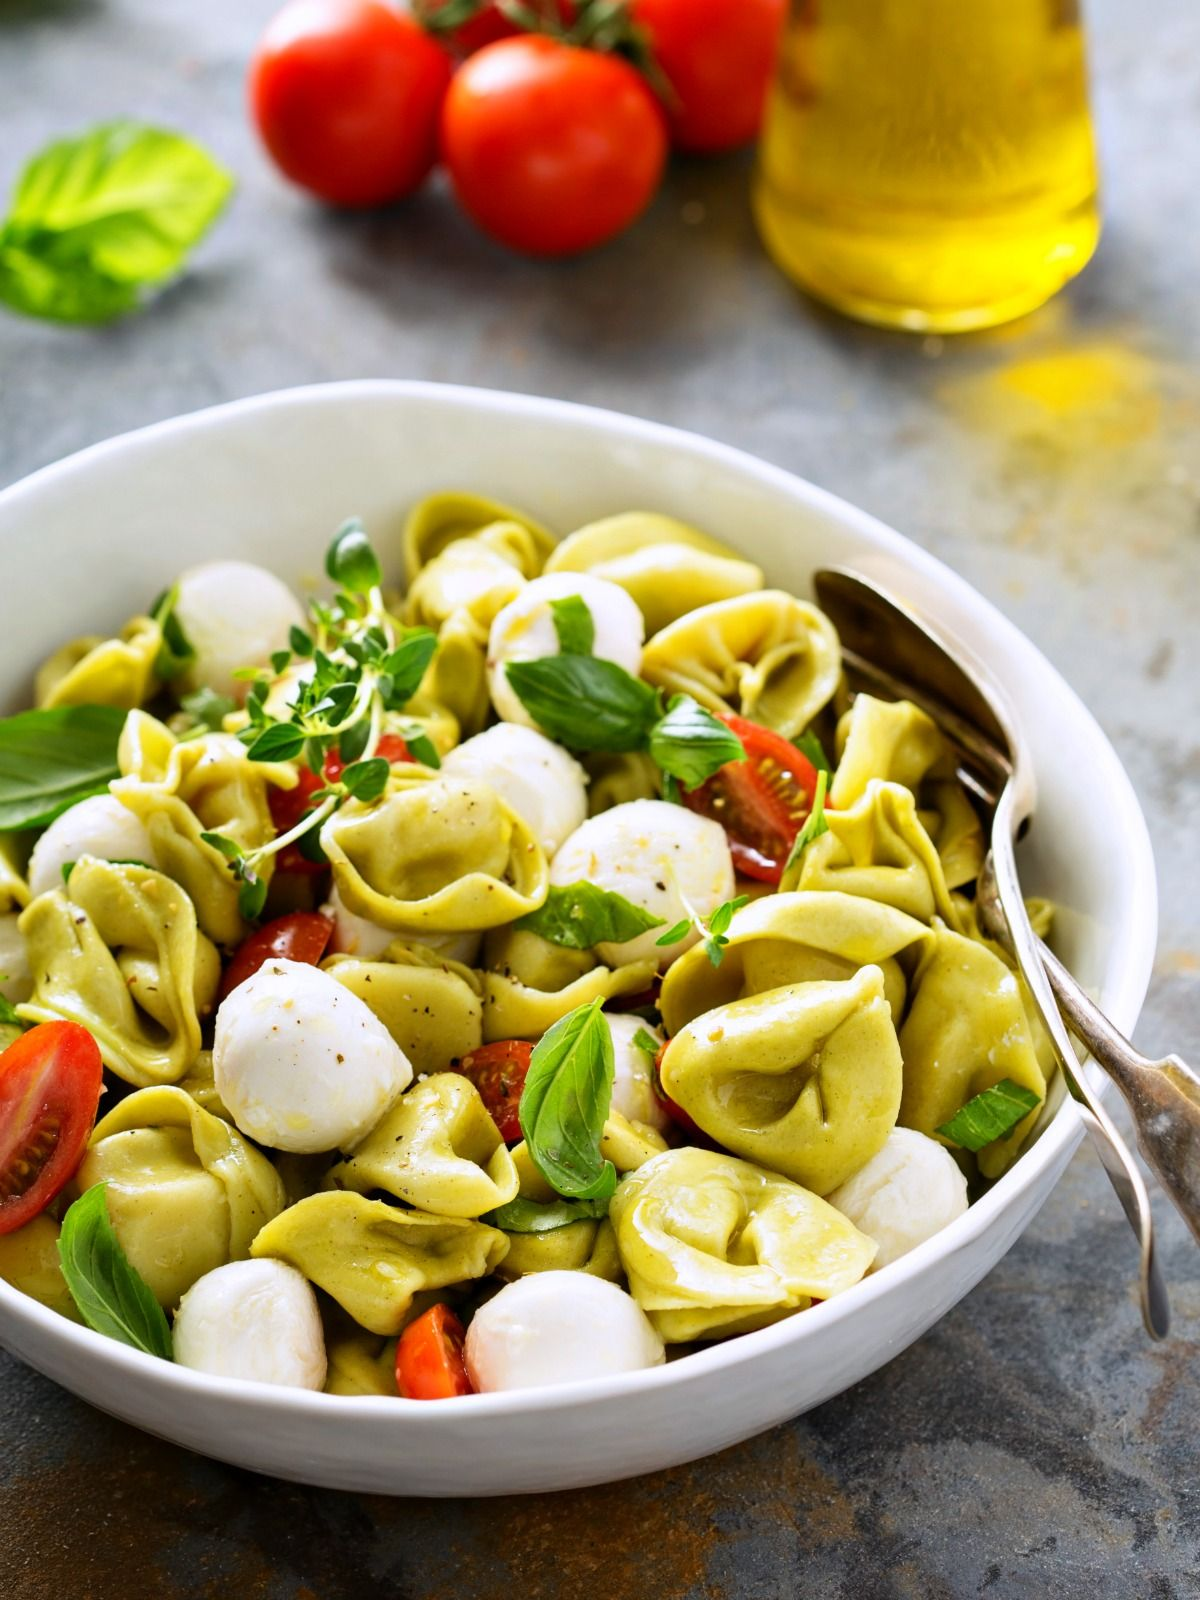 This fresh, easy, and filling Tortellini Pasta Salad with Caprese flavors makes a quick vegetarian dinner or side dish! #pioneerwomannachocheesecasserole